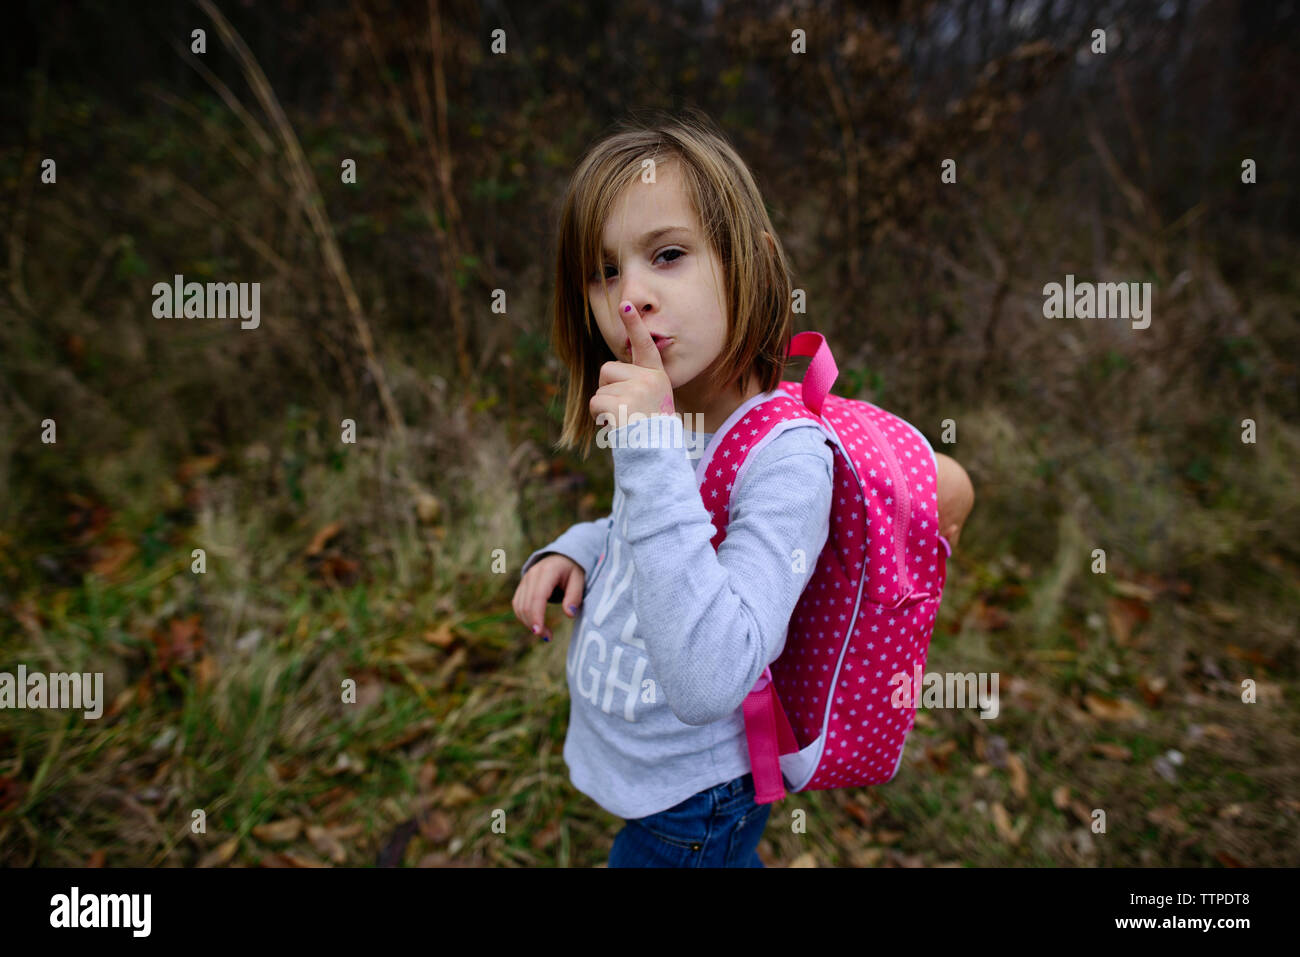 High angle portrait of girl with finger on lips standing on field - Stock Image